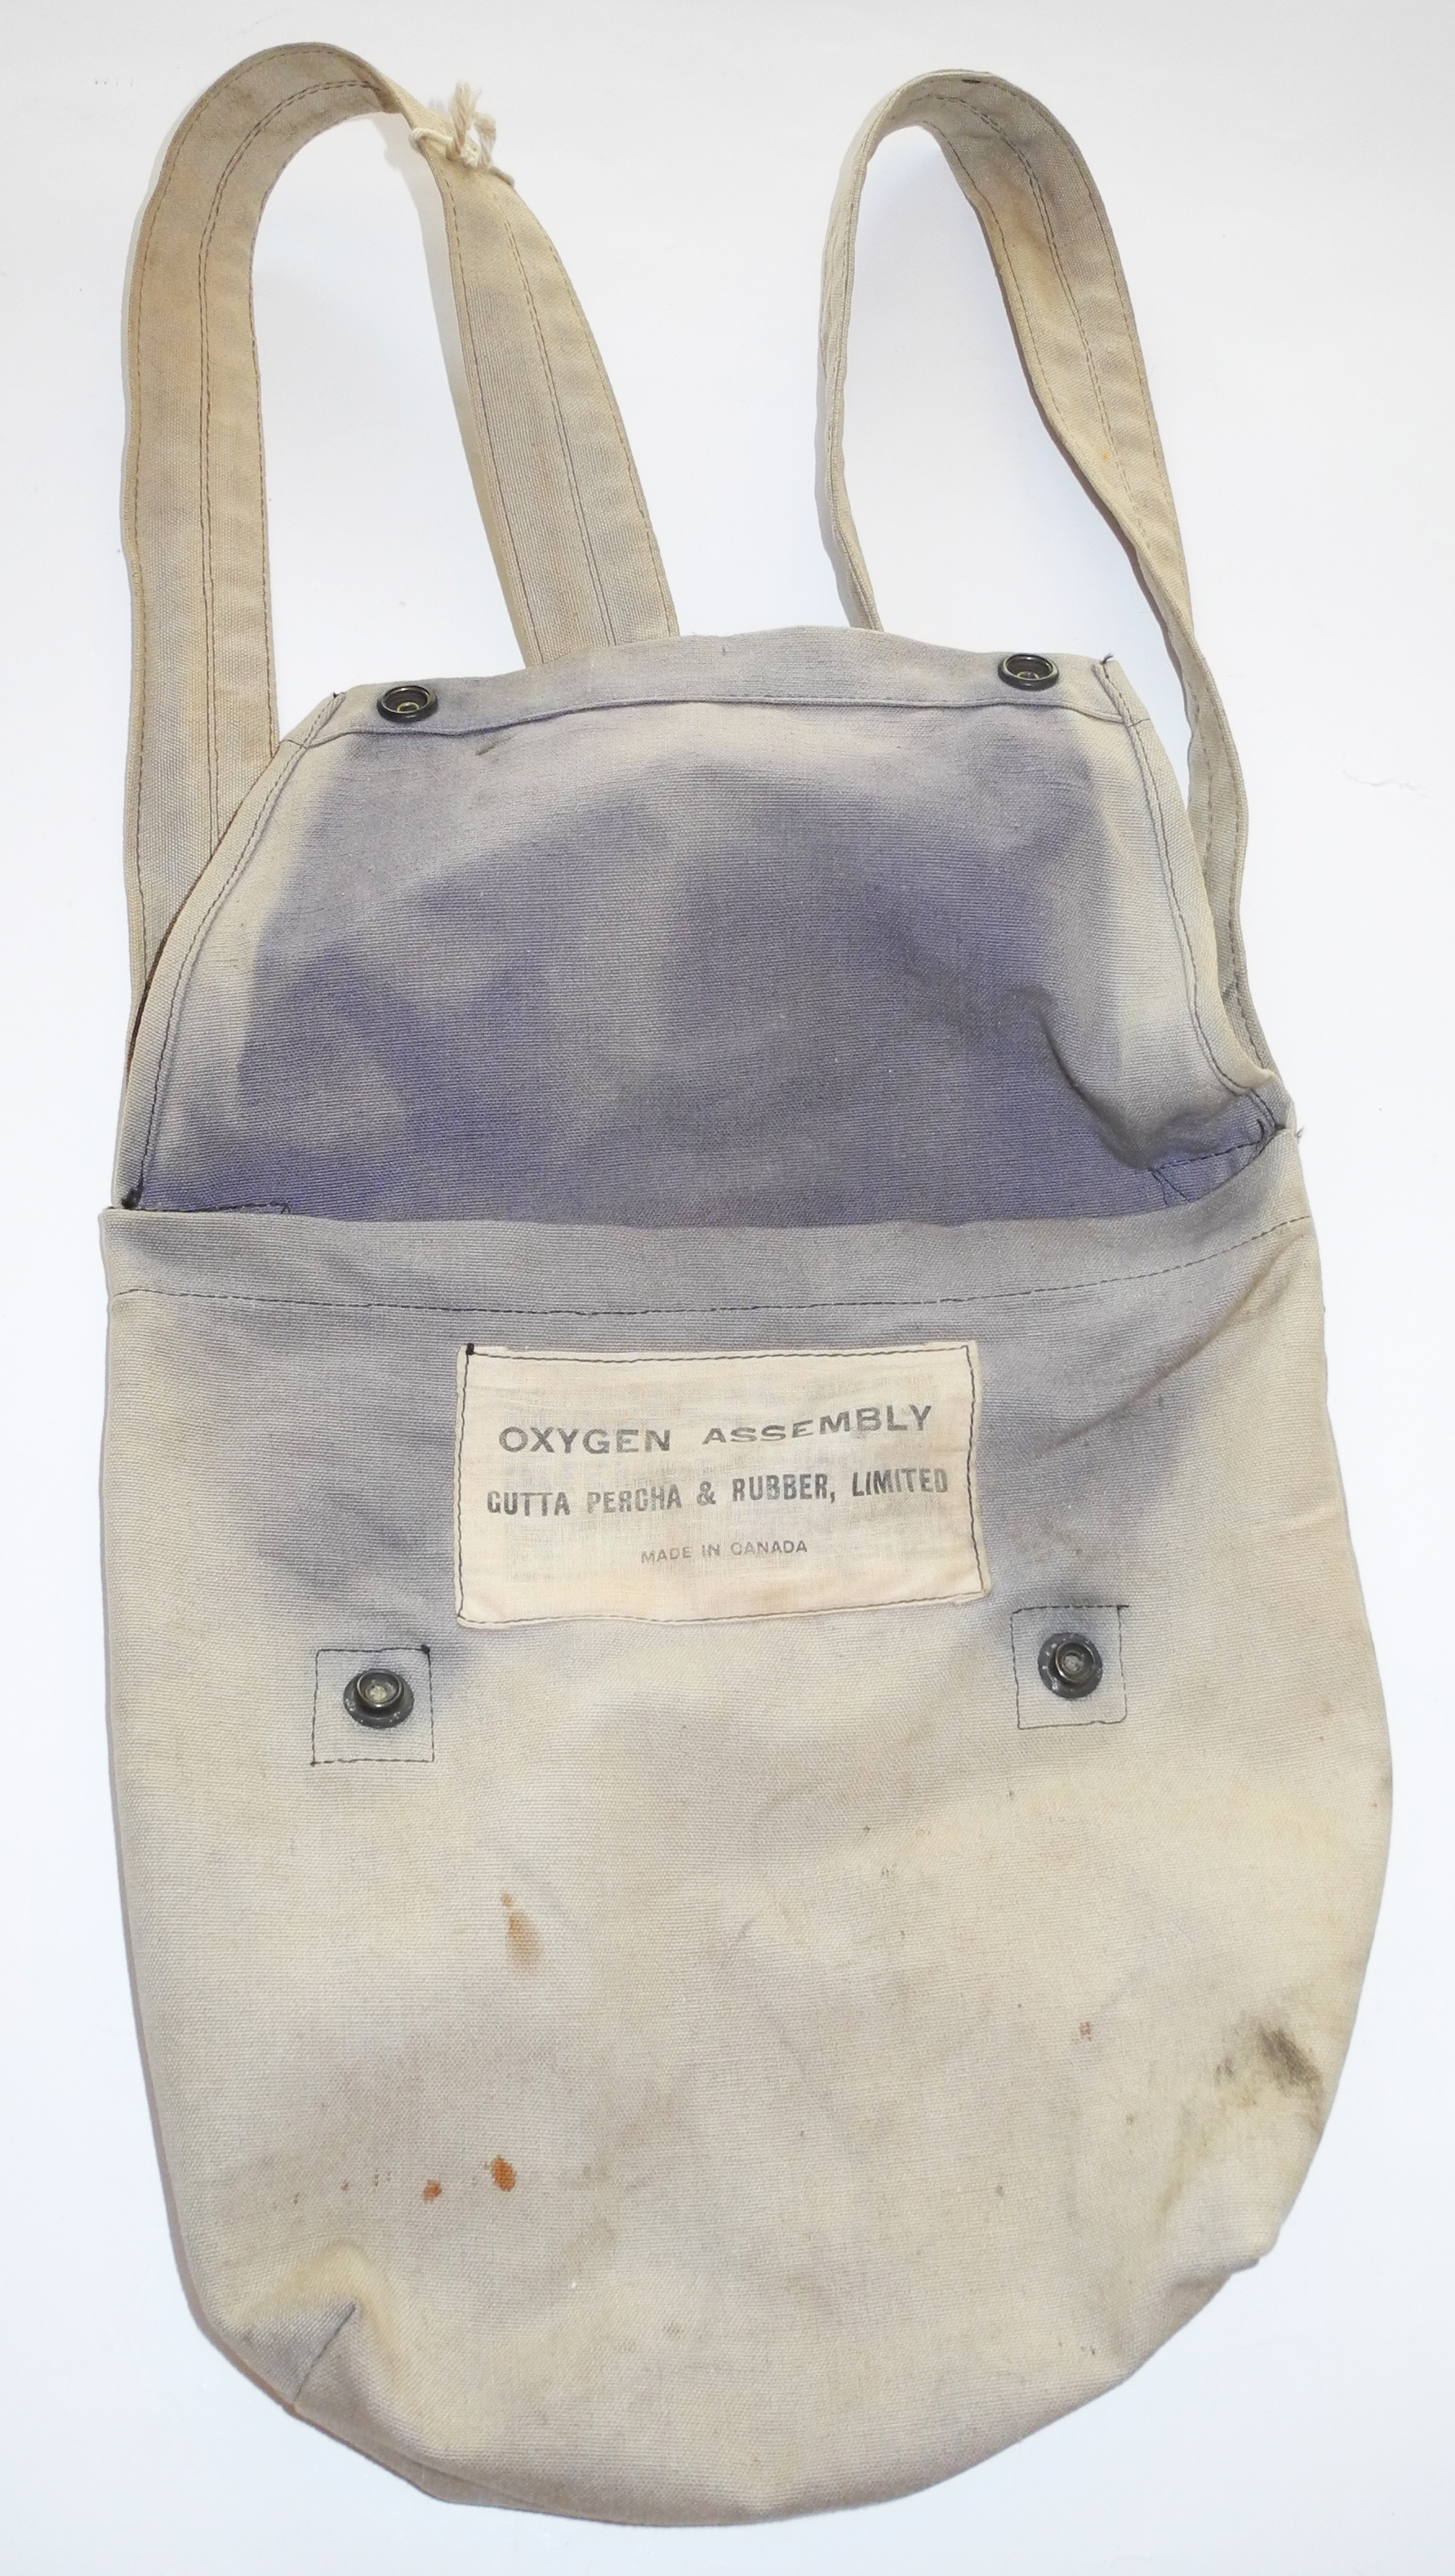 RCAF GPR Oxygen Mask stowage bag9